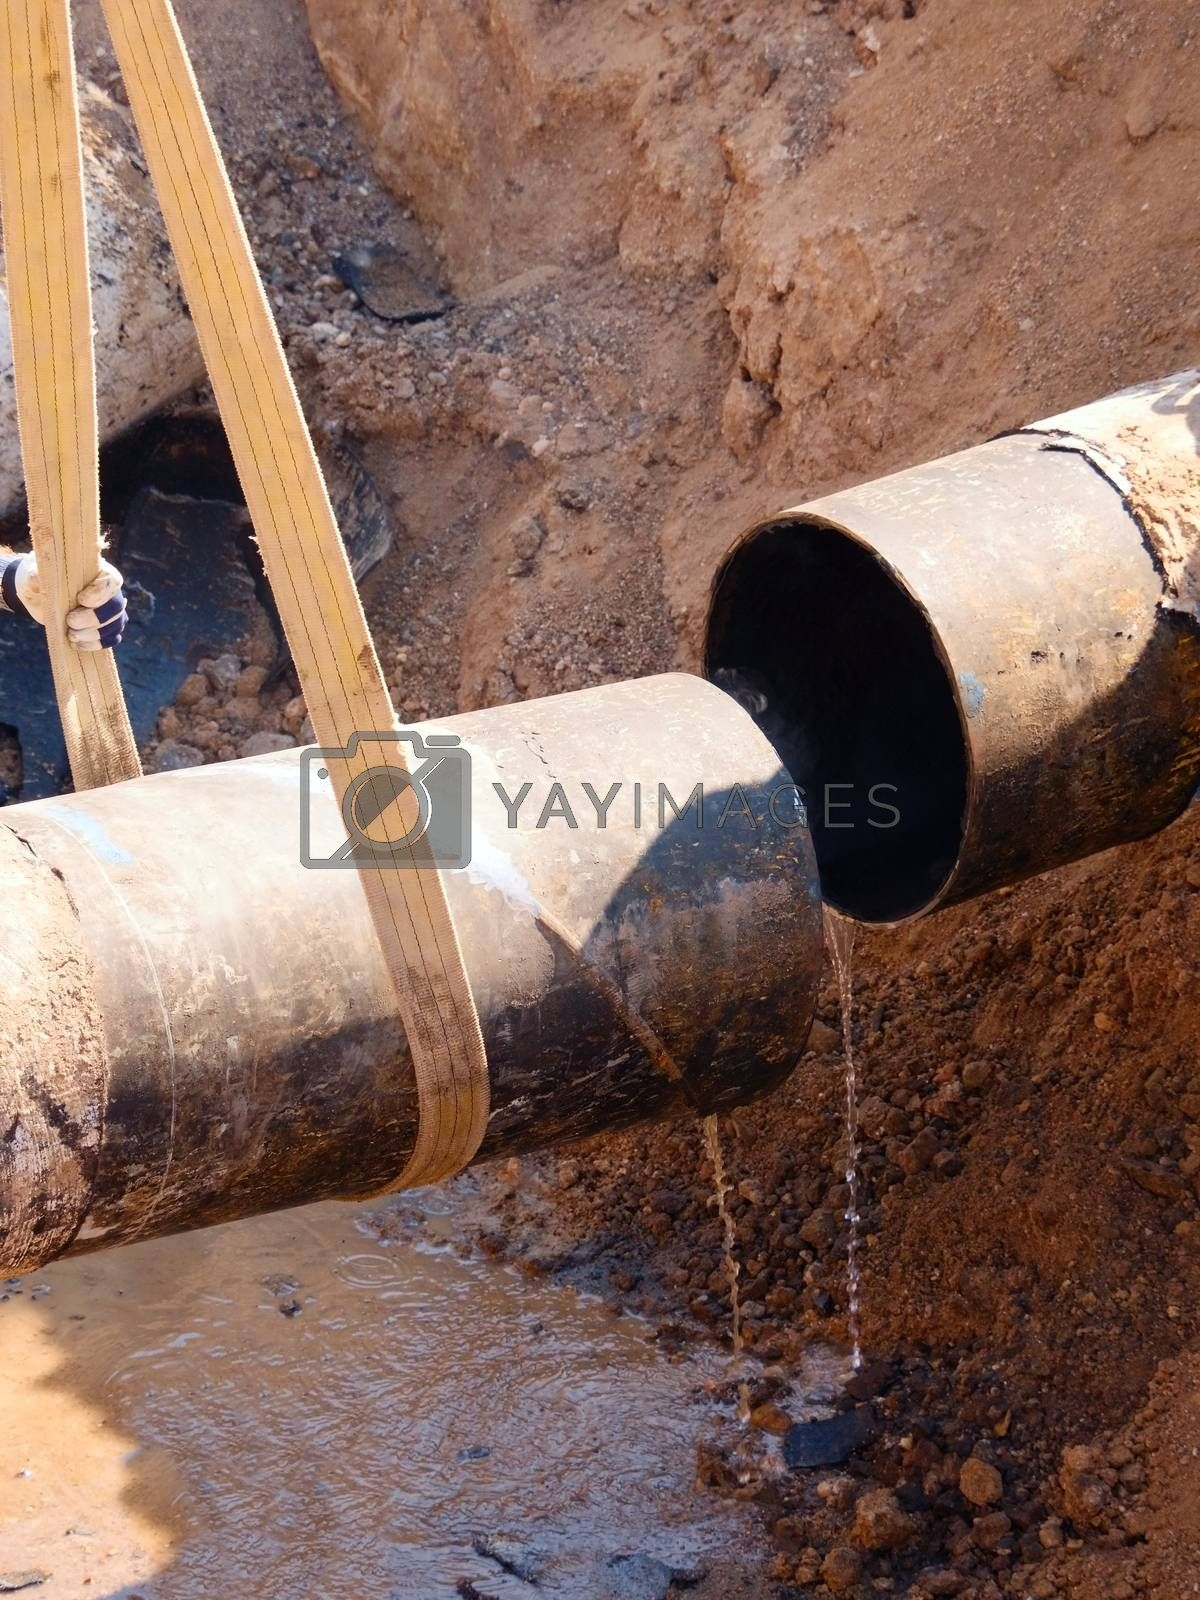 Rusty Old Iron Pipe With Clear Water Flowing From It. Waste water drain pipe in clay